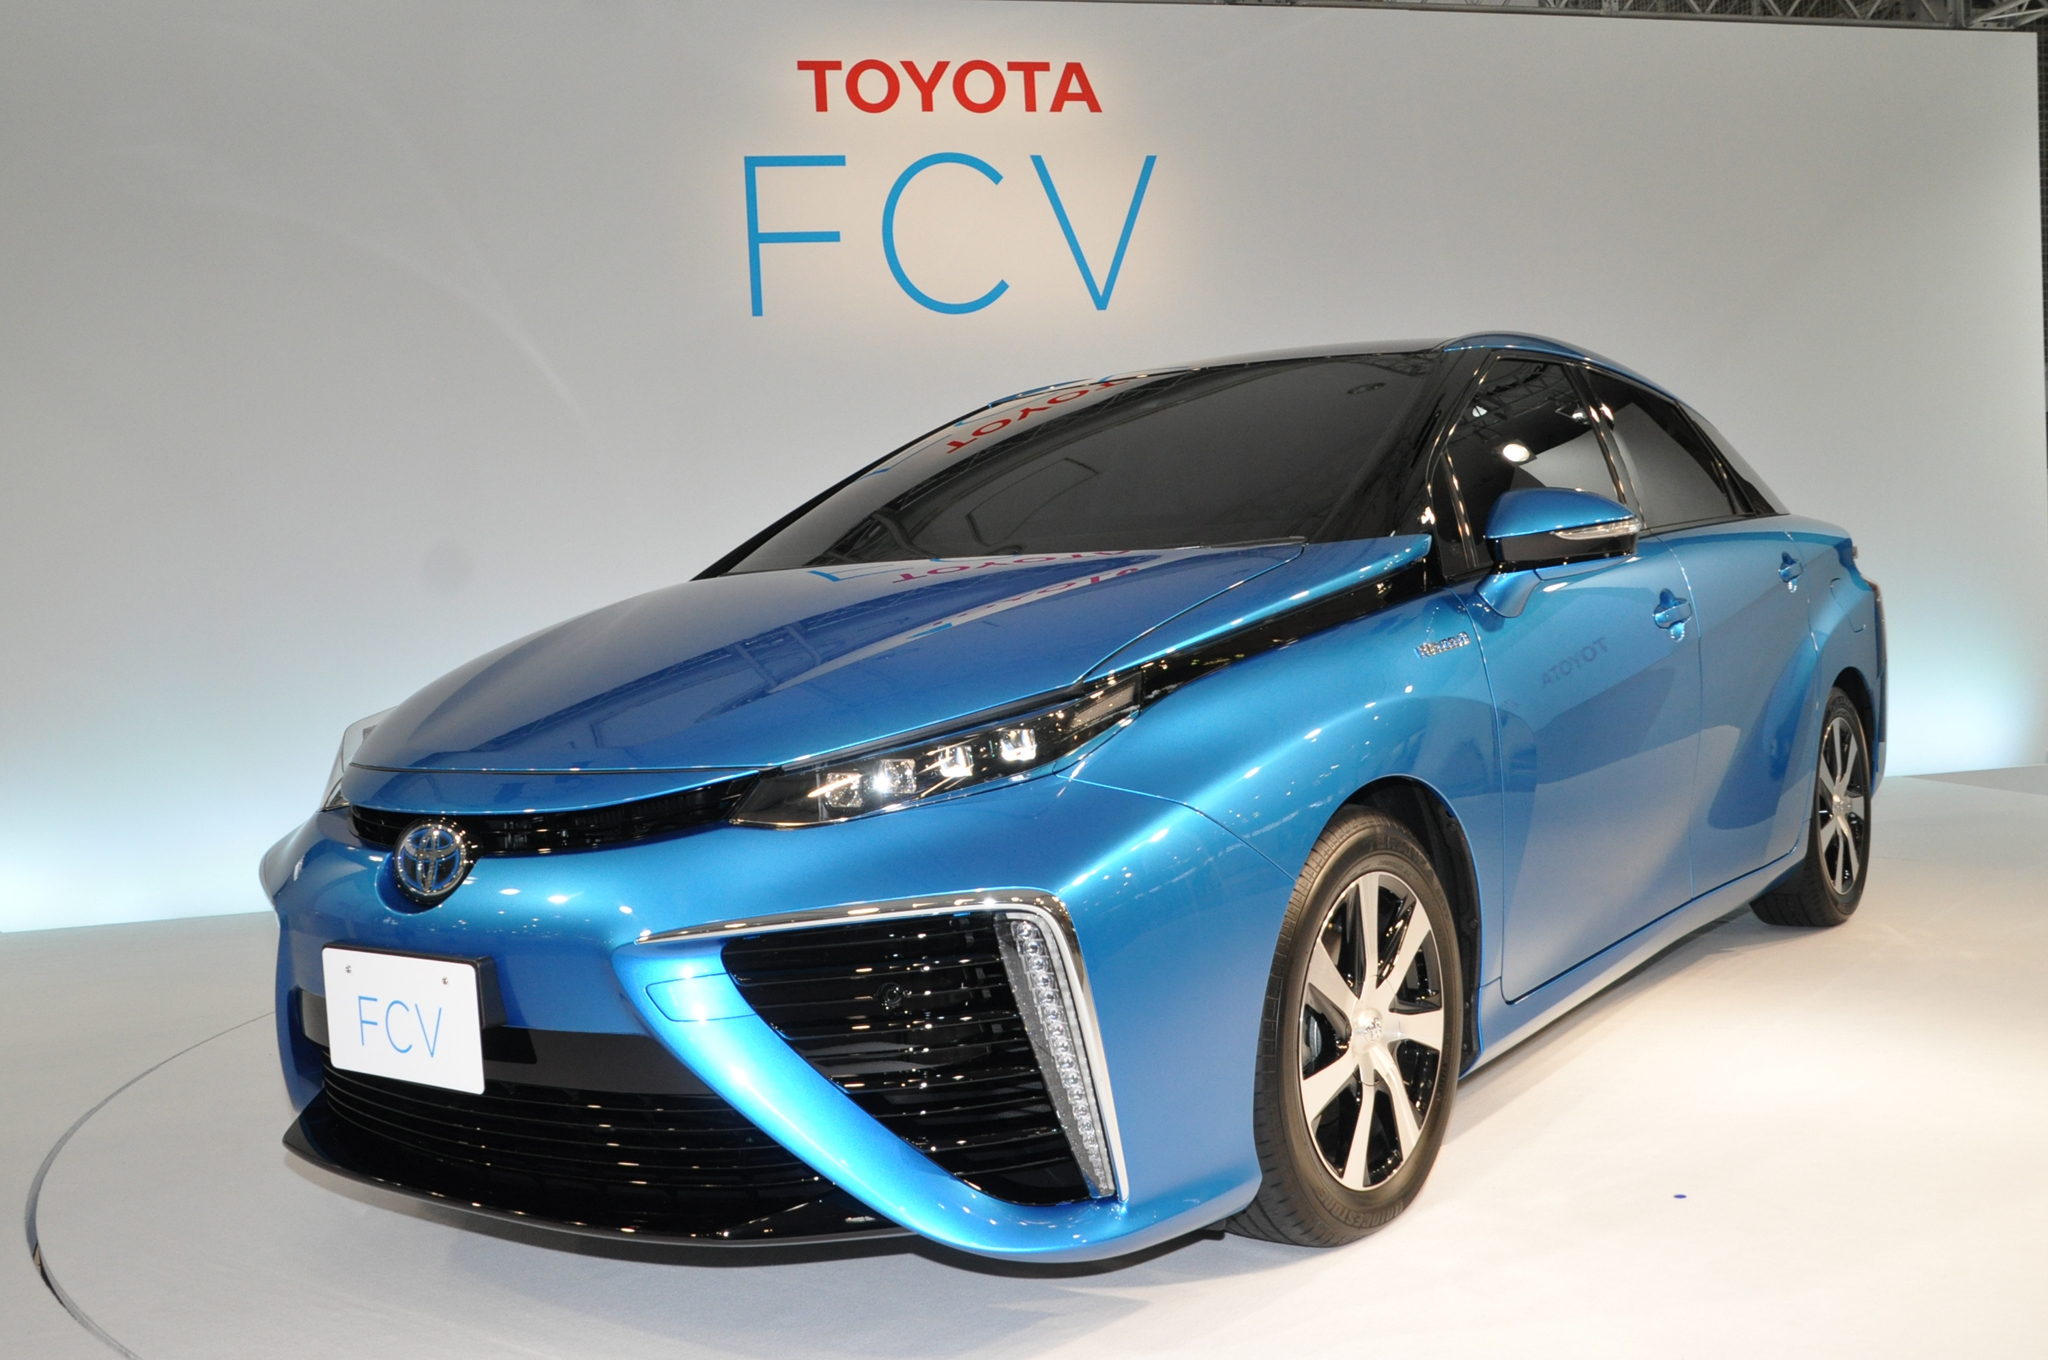 Toyota Fuel Cell Sedan Exterior Design Revealed, On Sale Next Year